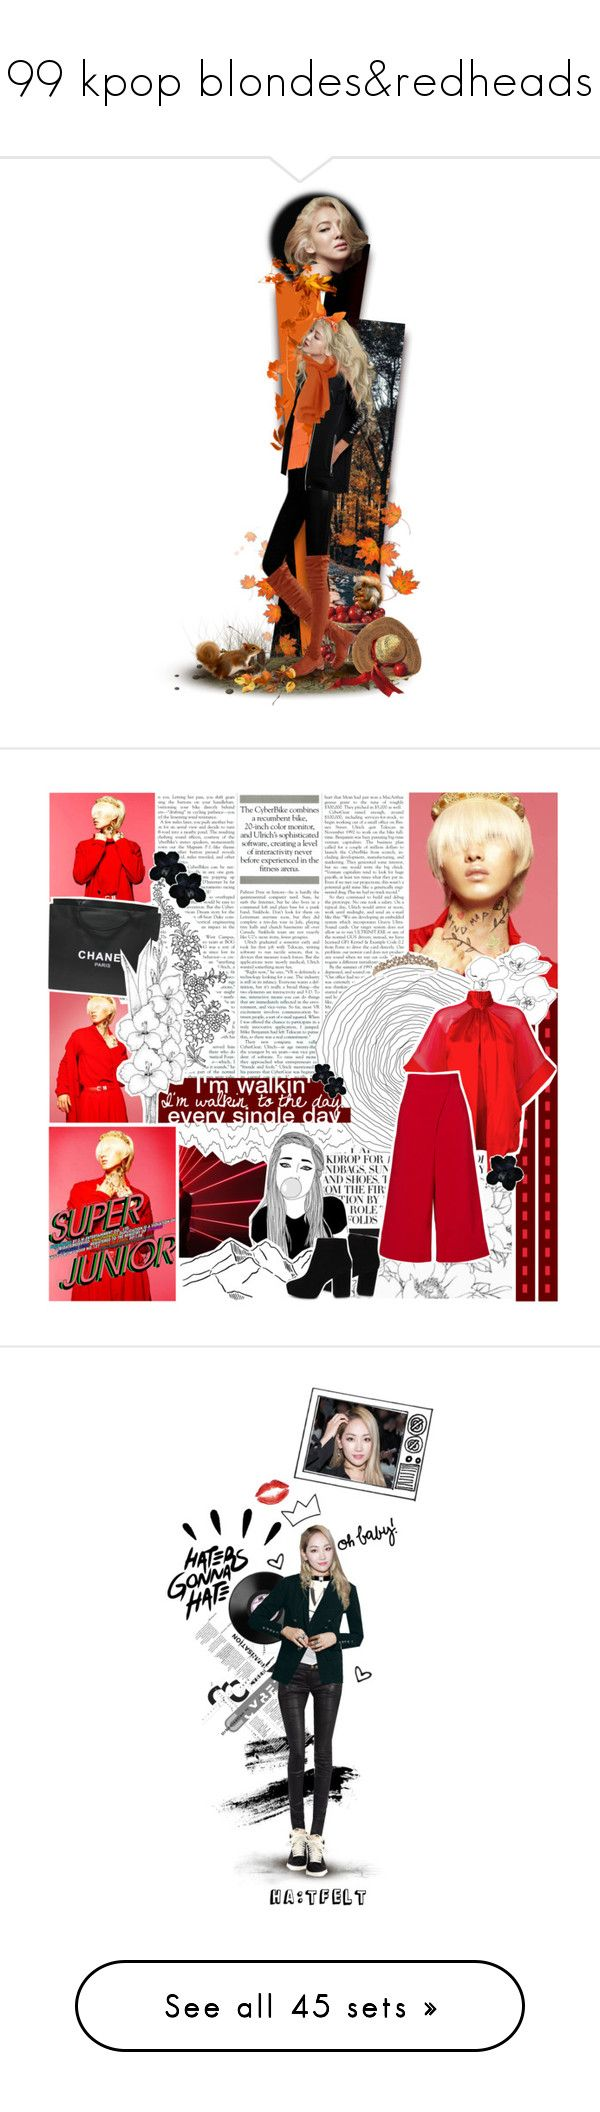 """99 kpop blondes&redheads"" by chomiczynka ❤ liked on Polyvore featuring 99kpopcollection, art, chomiczynkadolls, Chanel, Givenchy, TIBI, ALDO, Être Cécile, LSA International and Gucci"